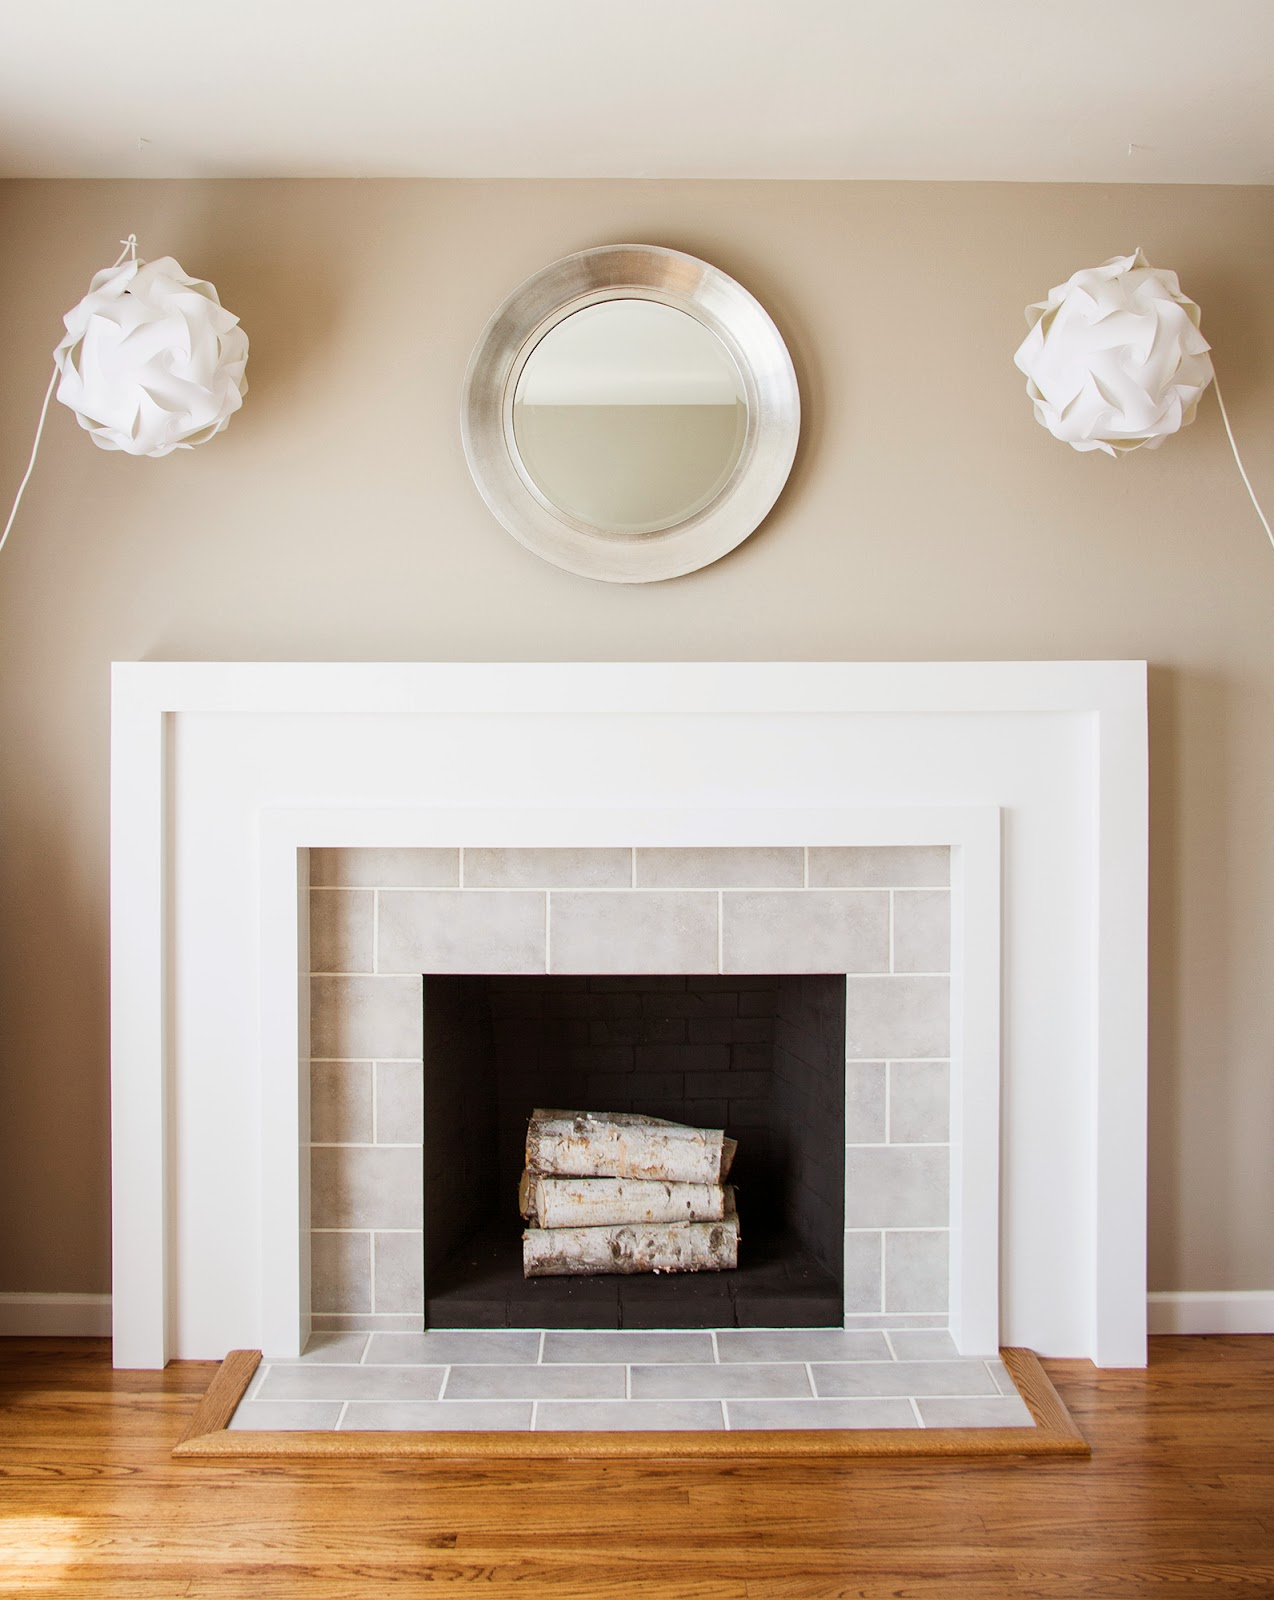 Tile Fireplace Makeover Swingncocoa Fireplace Makeover Part 3 Deliciously Done